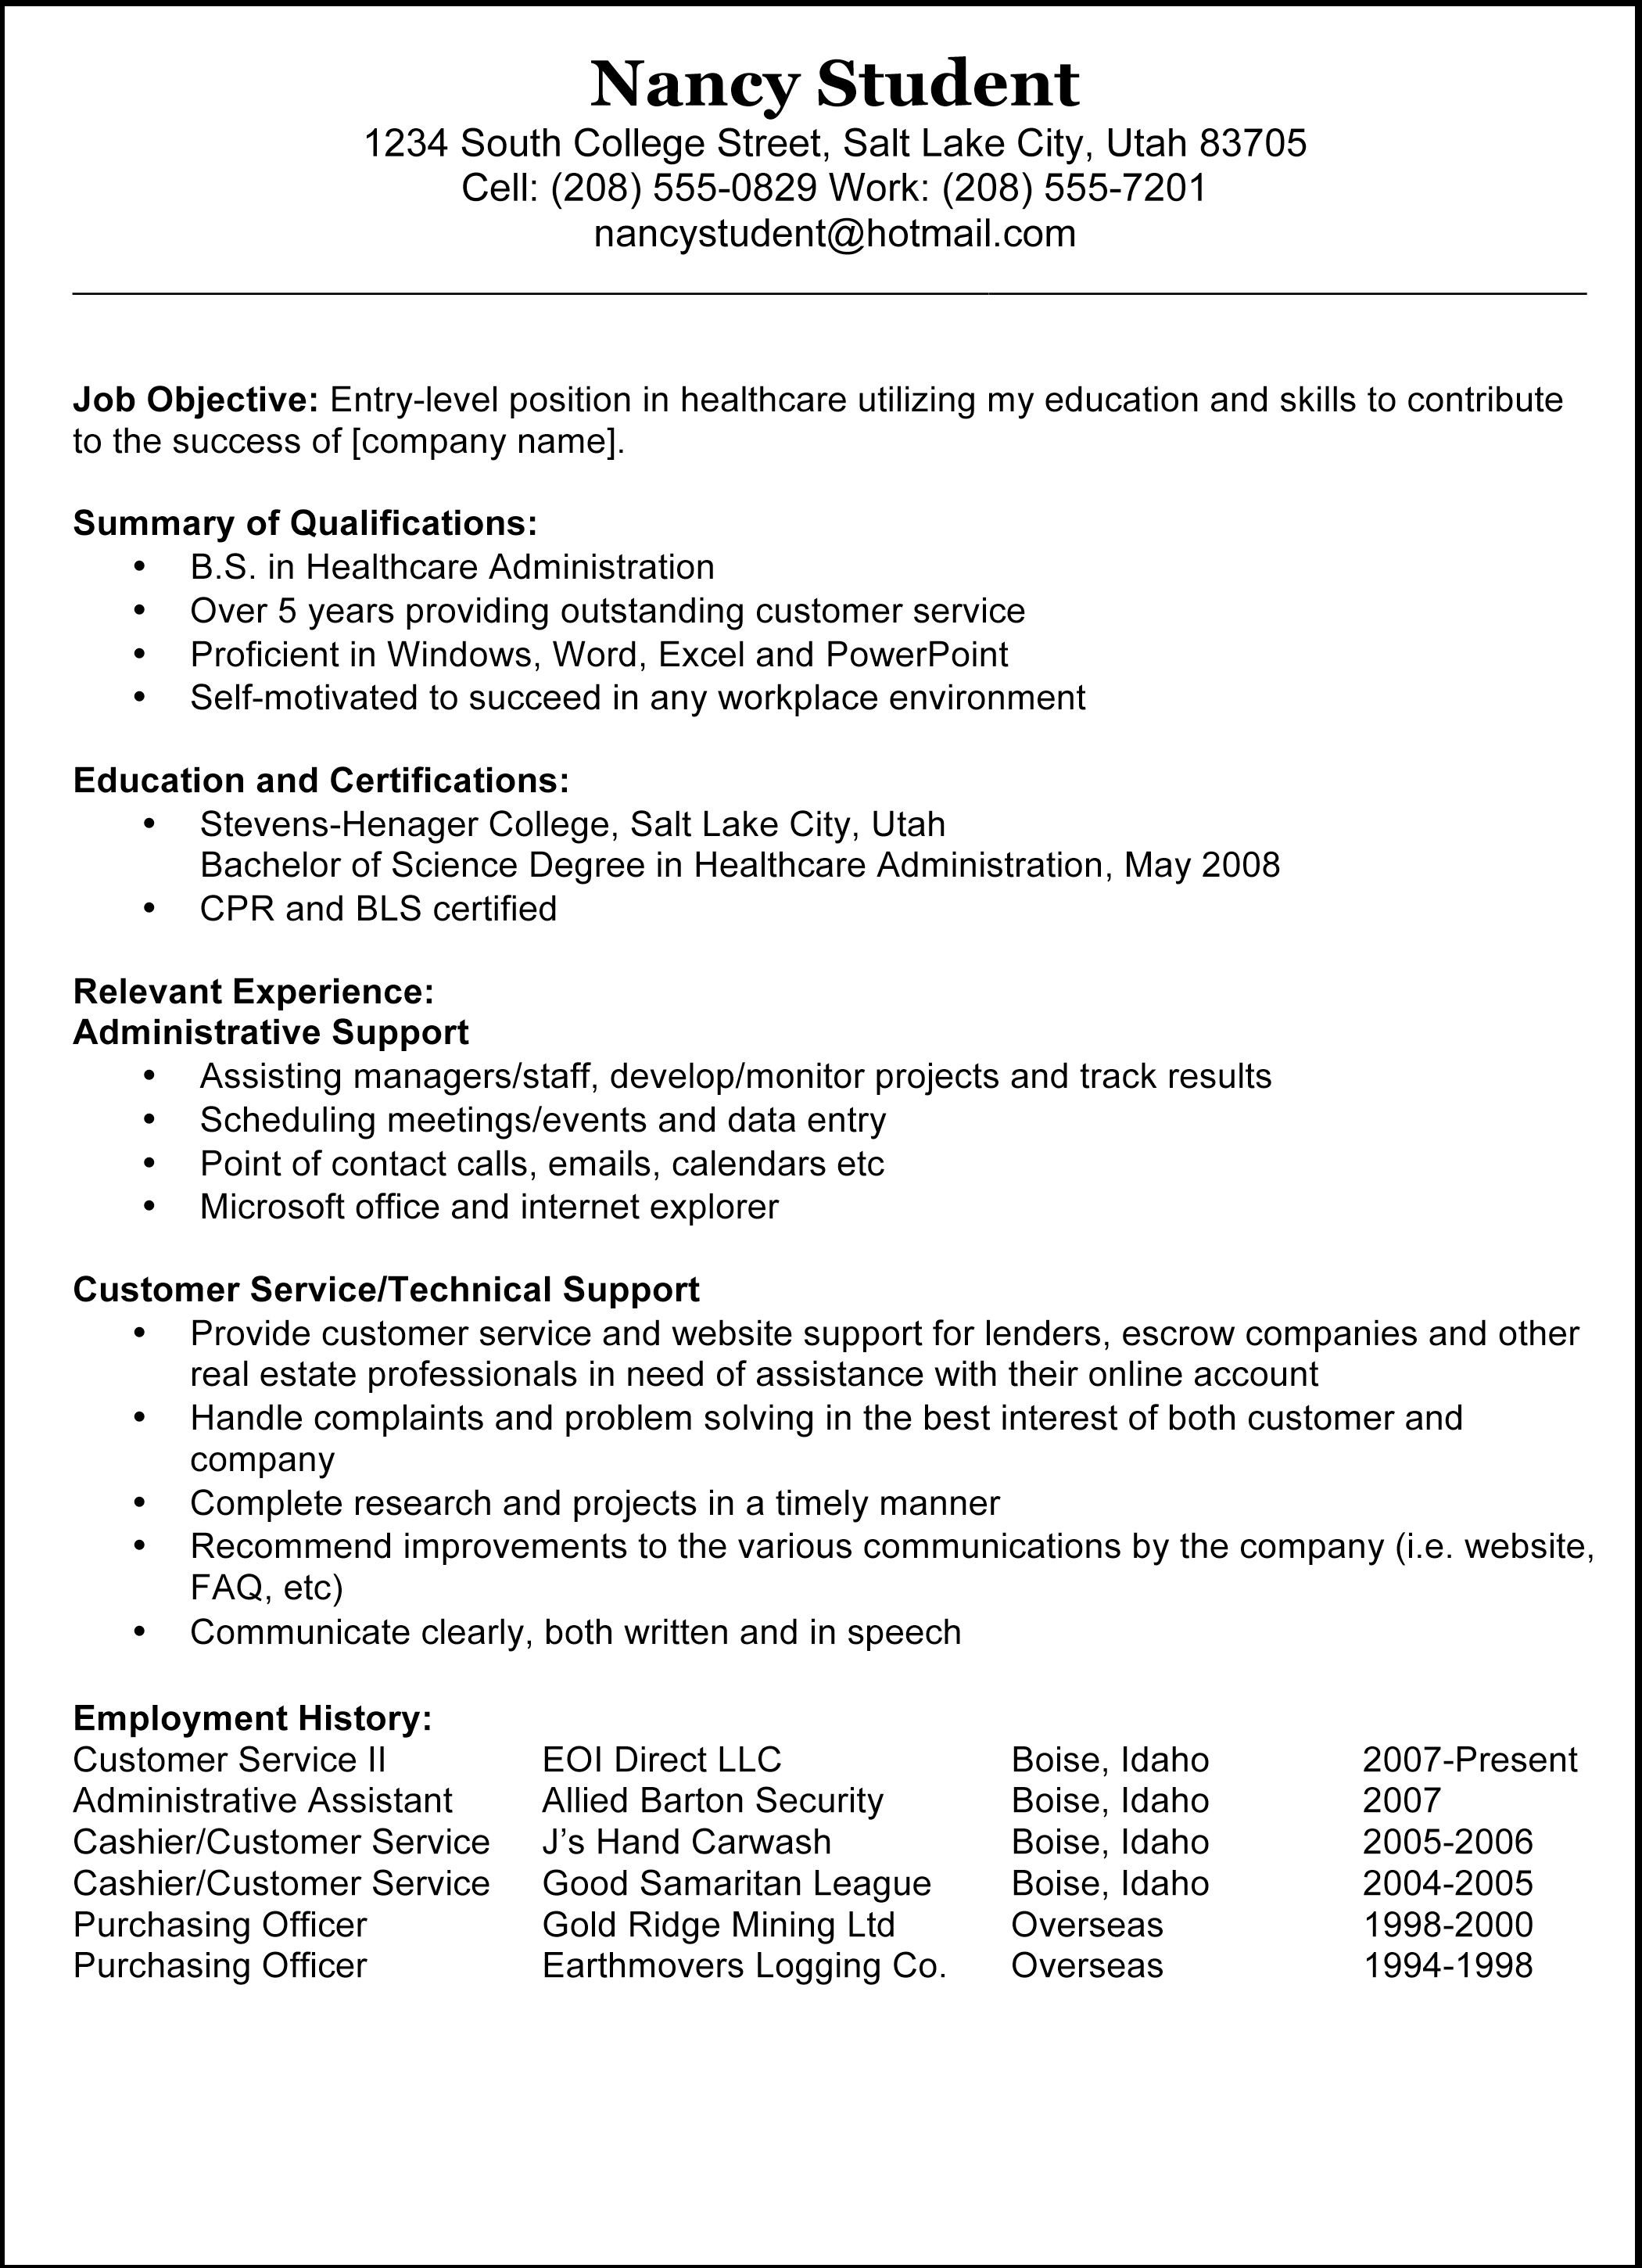 Developer Resume Examples Copy Of 2014 Resume Sample  Click On The Document For An Editable